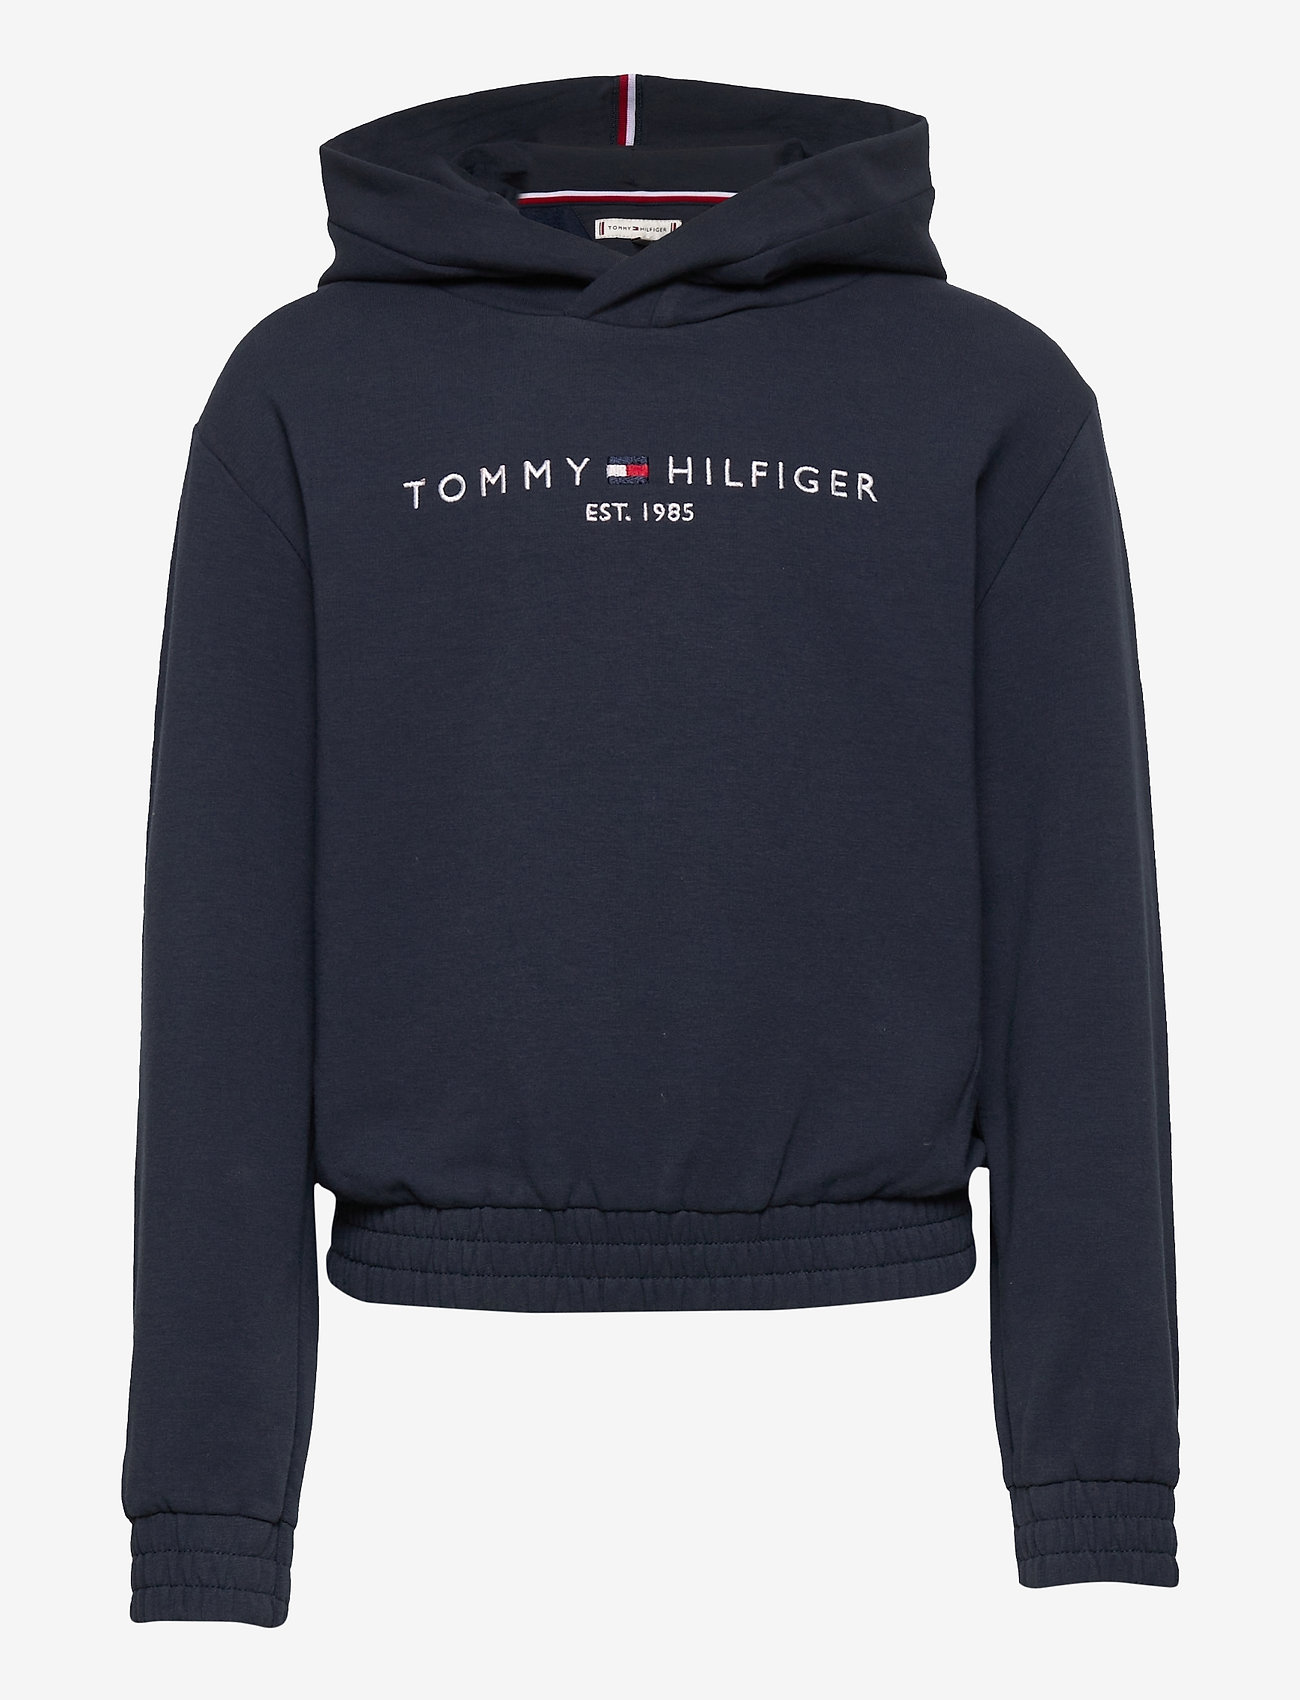 Tommy Hilfiger - ESSENTIAL HOODED SWEATSHIRT - kapuzenpullover - twilight navy - 0